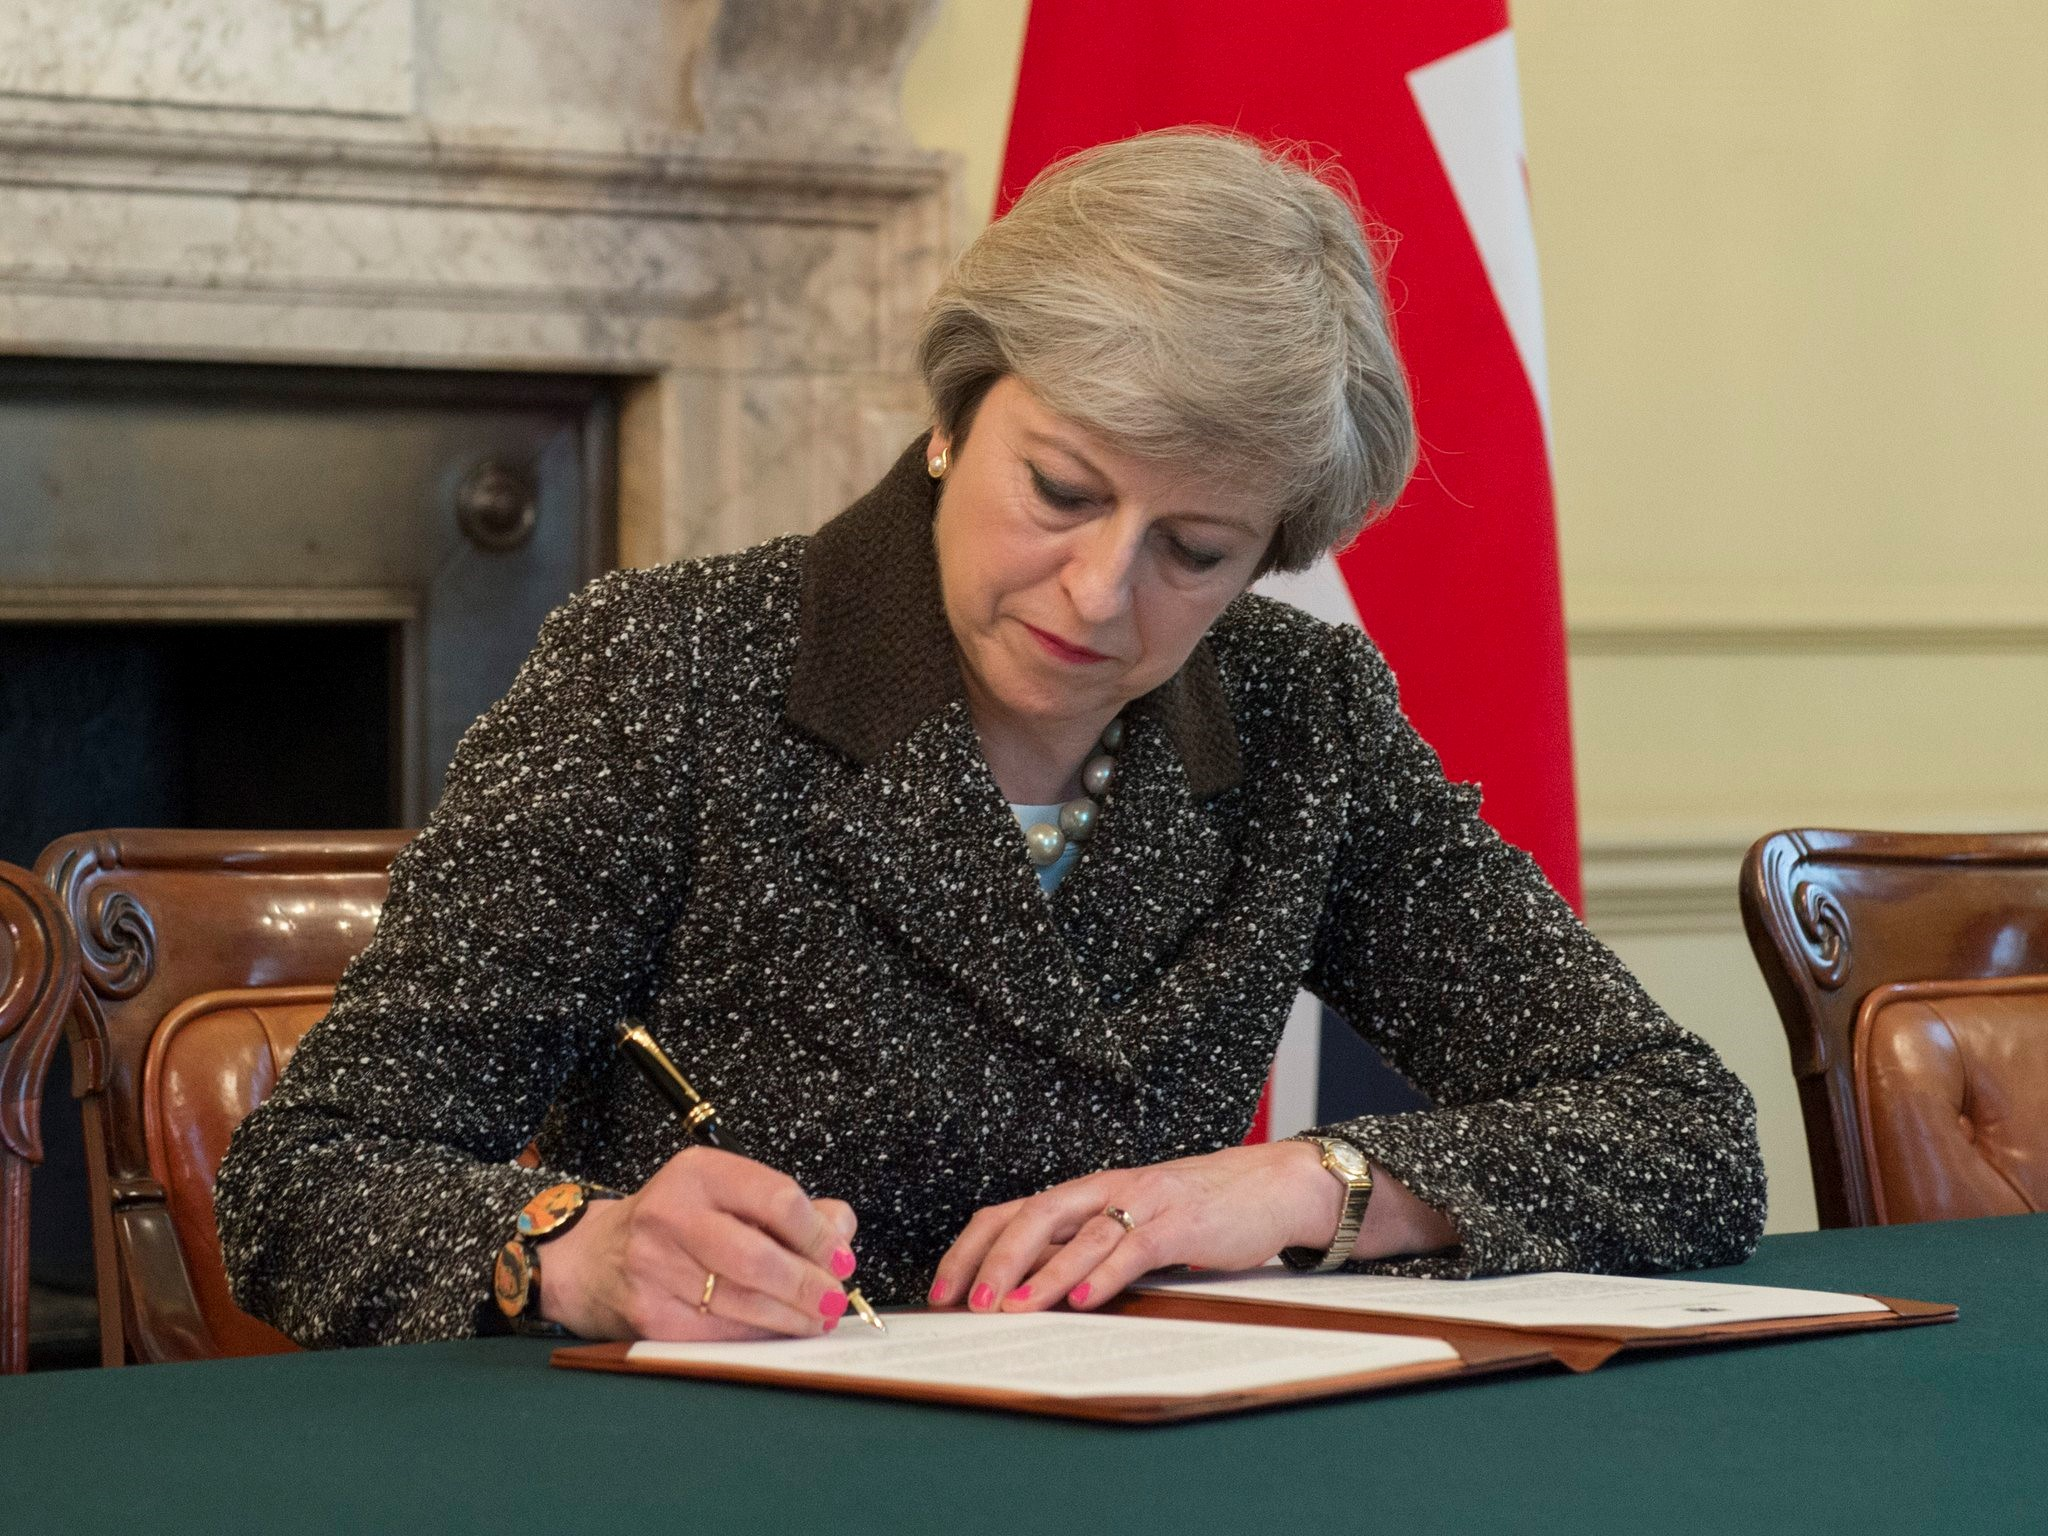 British Prime Minister Theresa May signs the letter to Donald Tusk invoking Article 50 on March 28, 2017 in London, England.